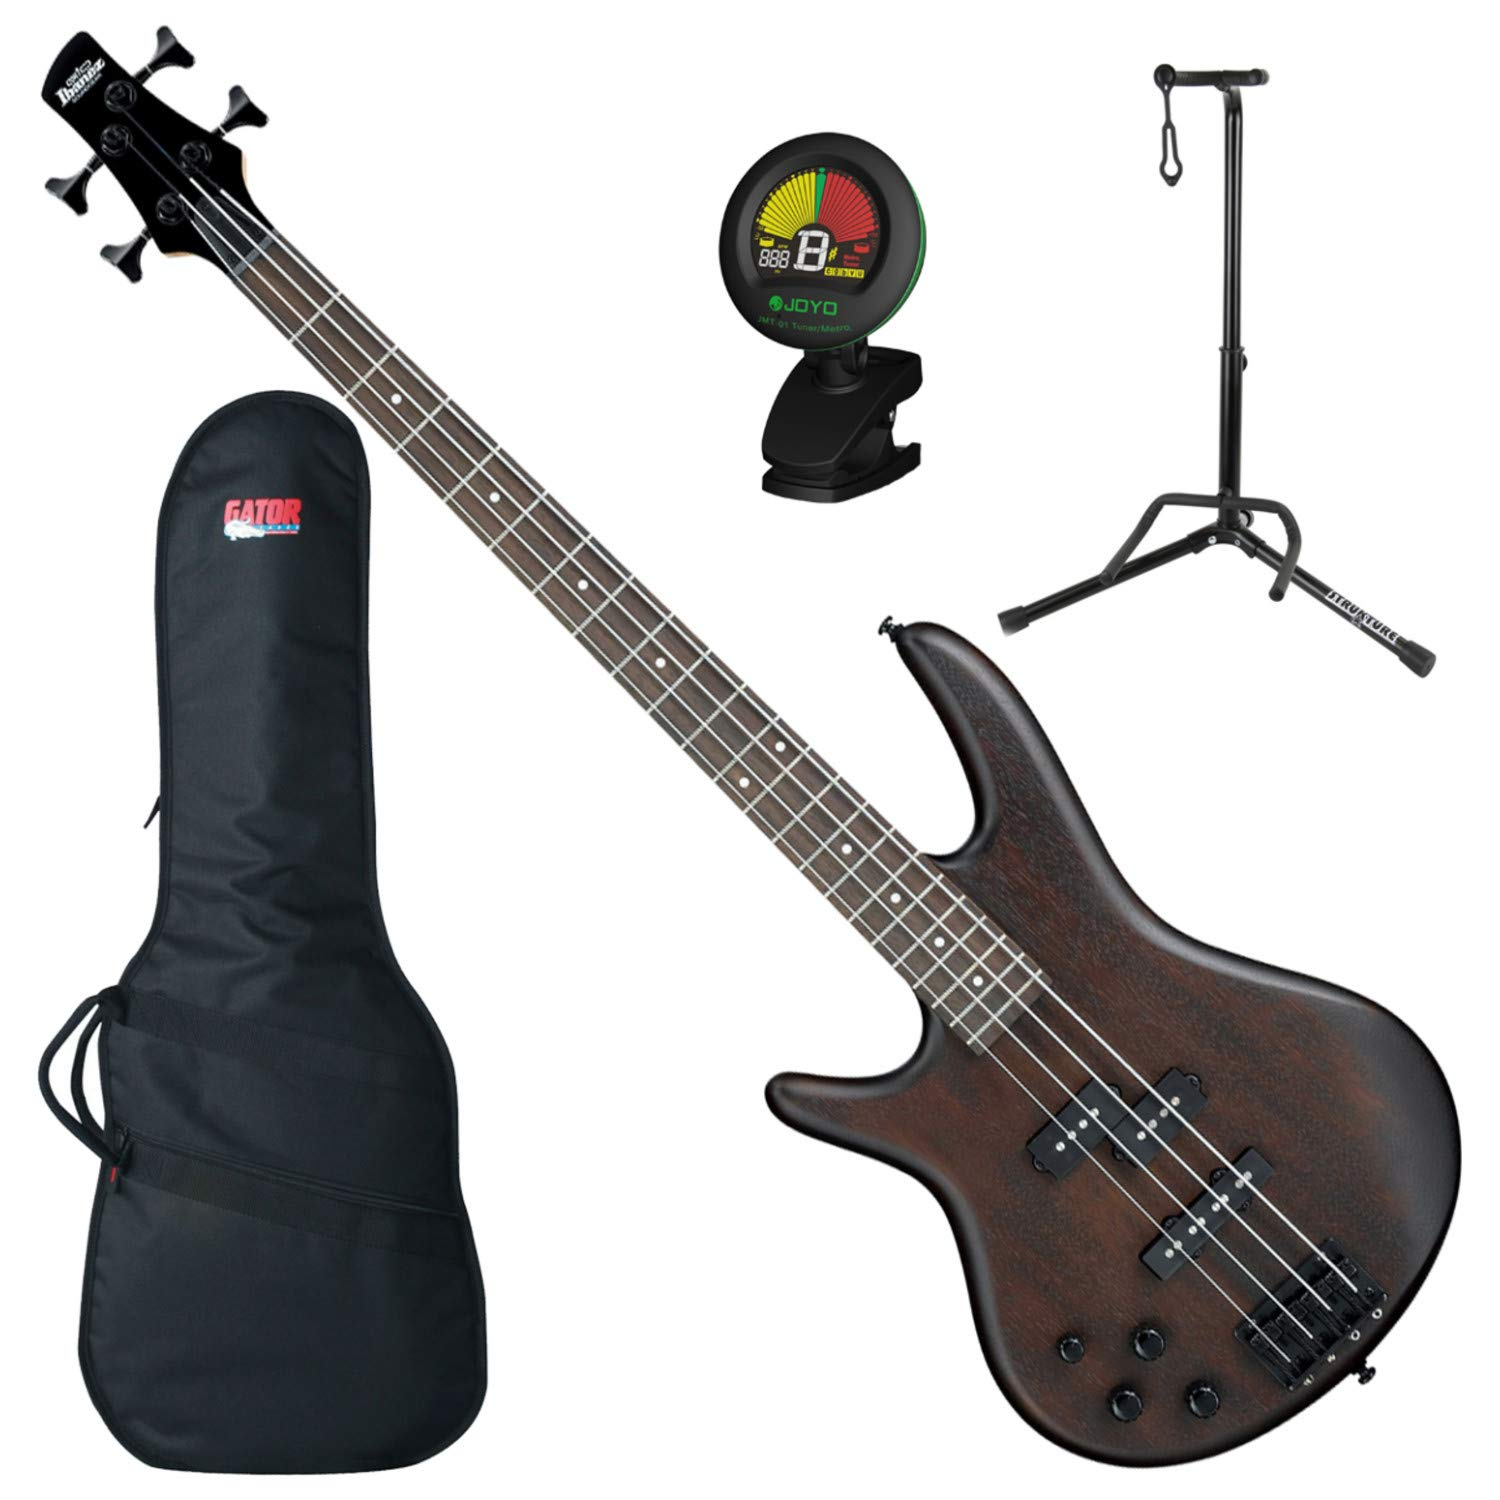 Ibanez GSR200BLWNF LEFT-HANDED 4 String Electric Bass (Walnut Flat) w/ Gig Bag, Tuner, and Stand by Ibanez (Image #1)